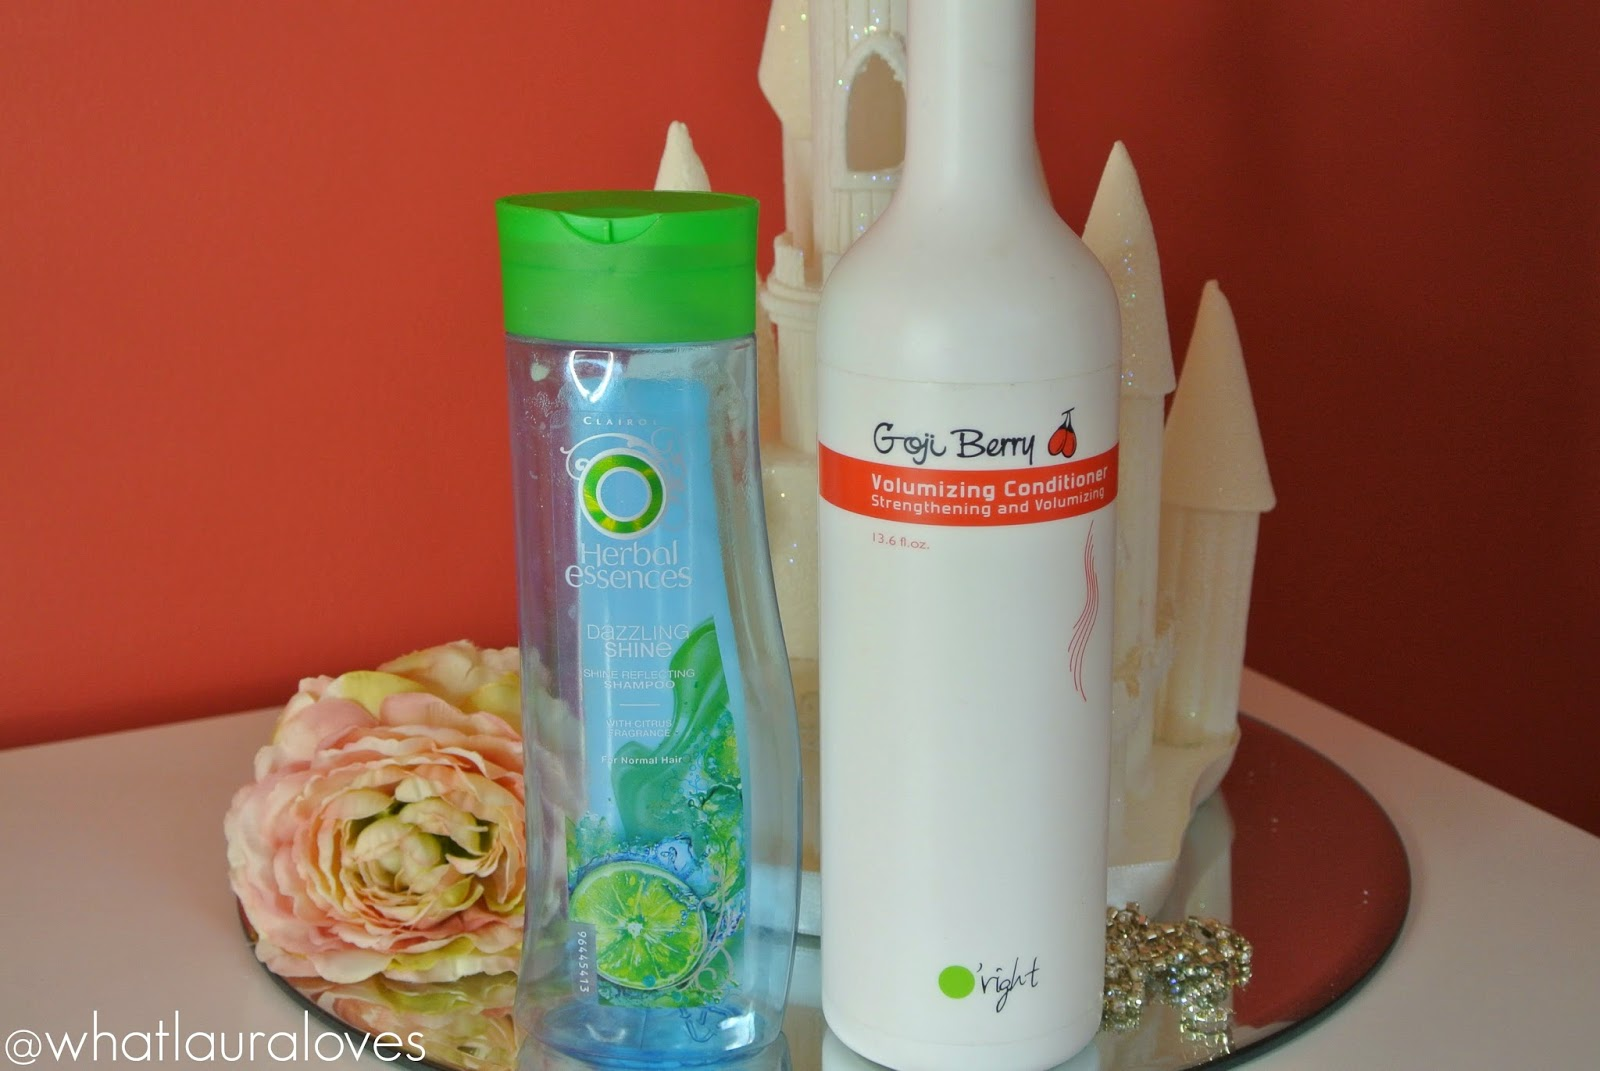 Herbal Essences and O'Right Shampoo and Conditioner